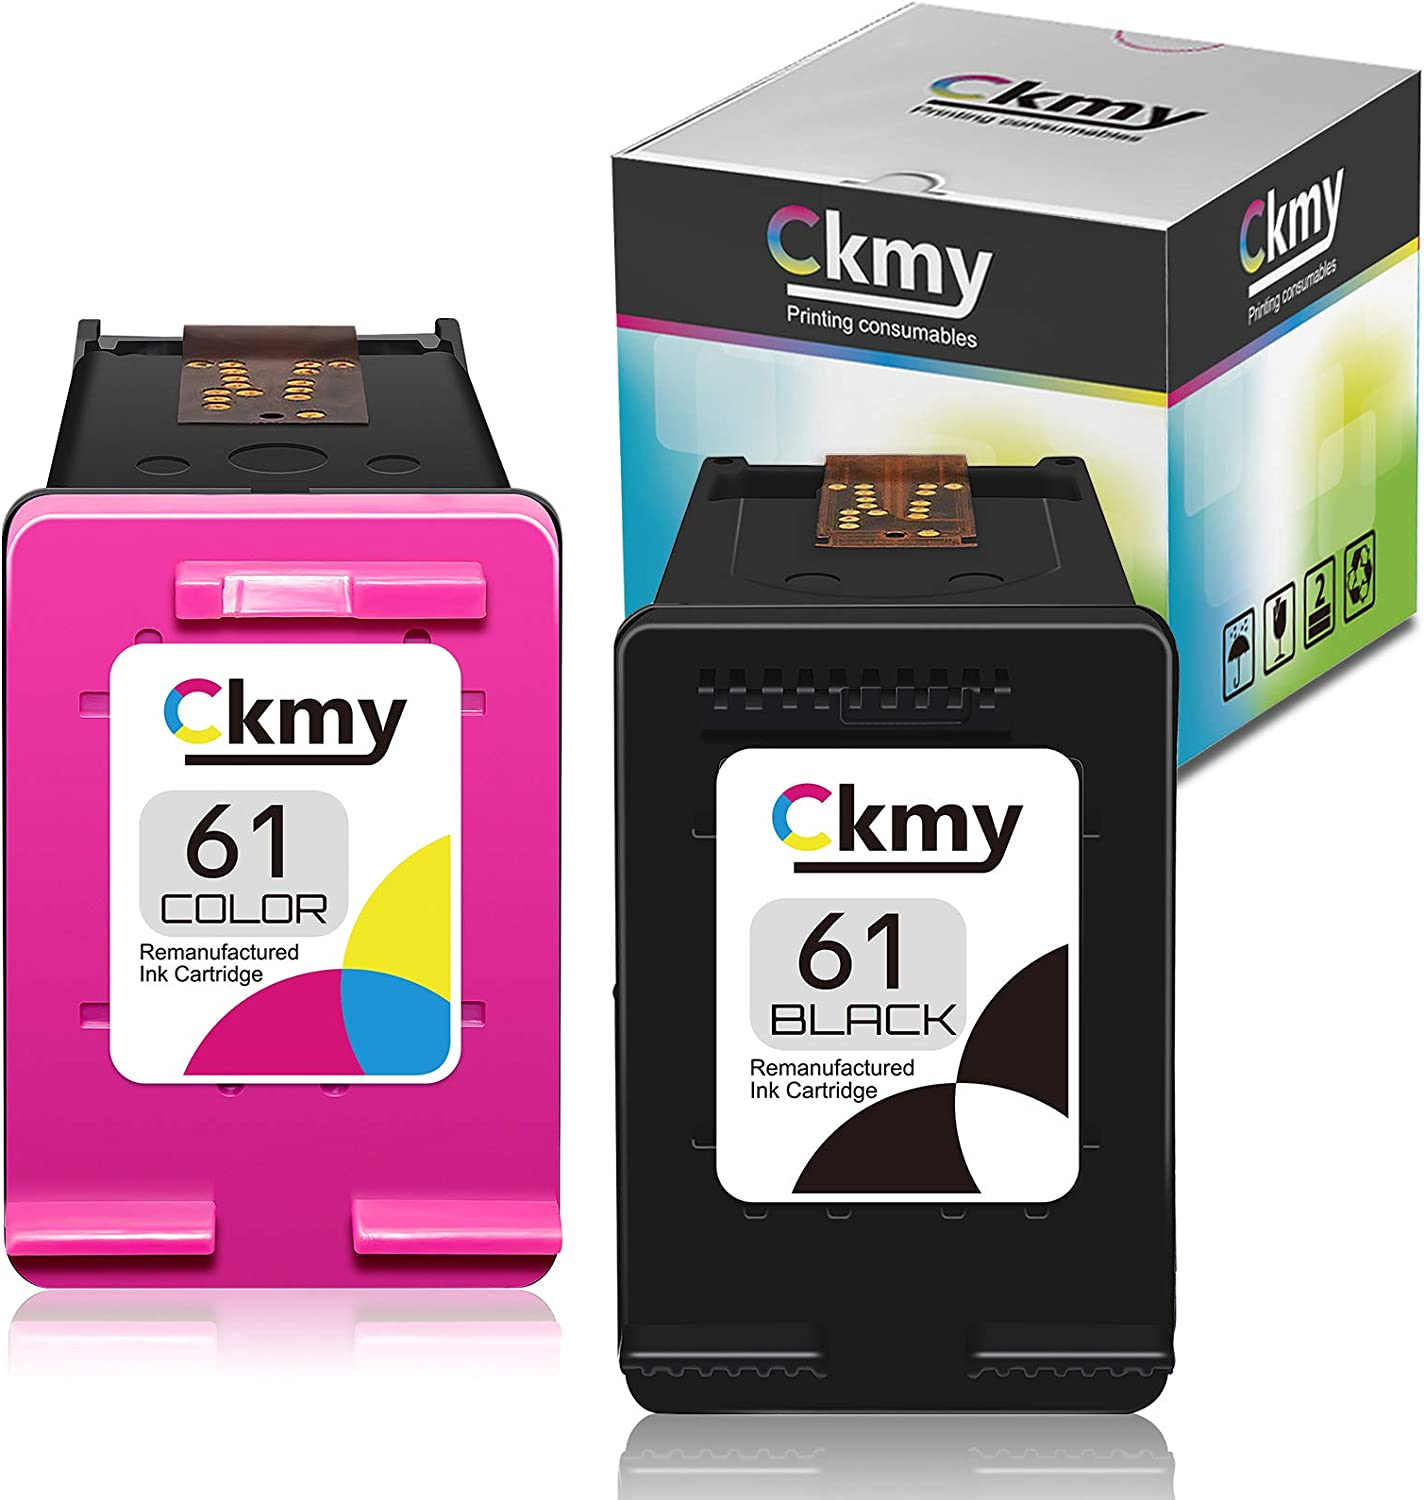 CKMY Remanufactured Ink Cartridge Replacement for 61 (1 Black & 1 Tri-Color) Used for HP Envy 4500 4502 5530 DeskJet 2512 1512 2542 2540 2544 3000 3052a 1055 3051a 2548 OfficeJet 4630 (Combo Pack)